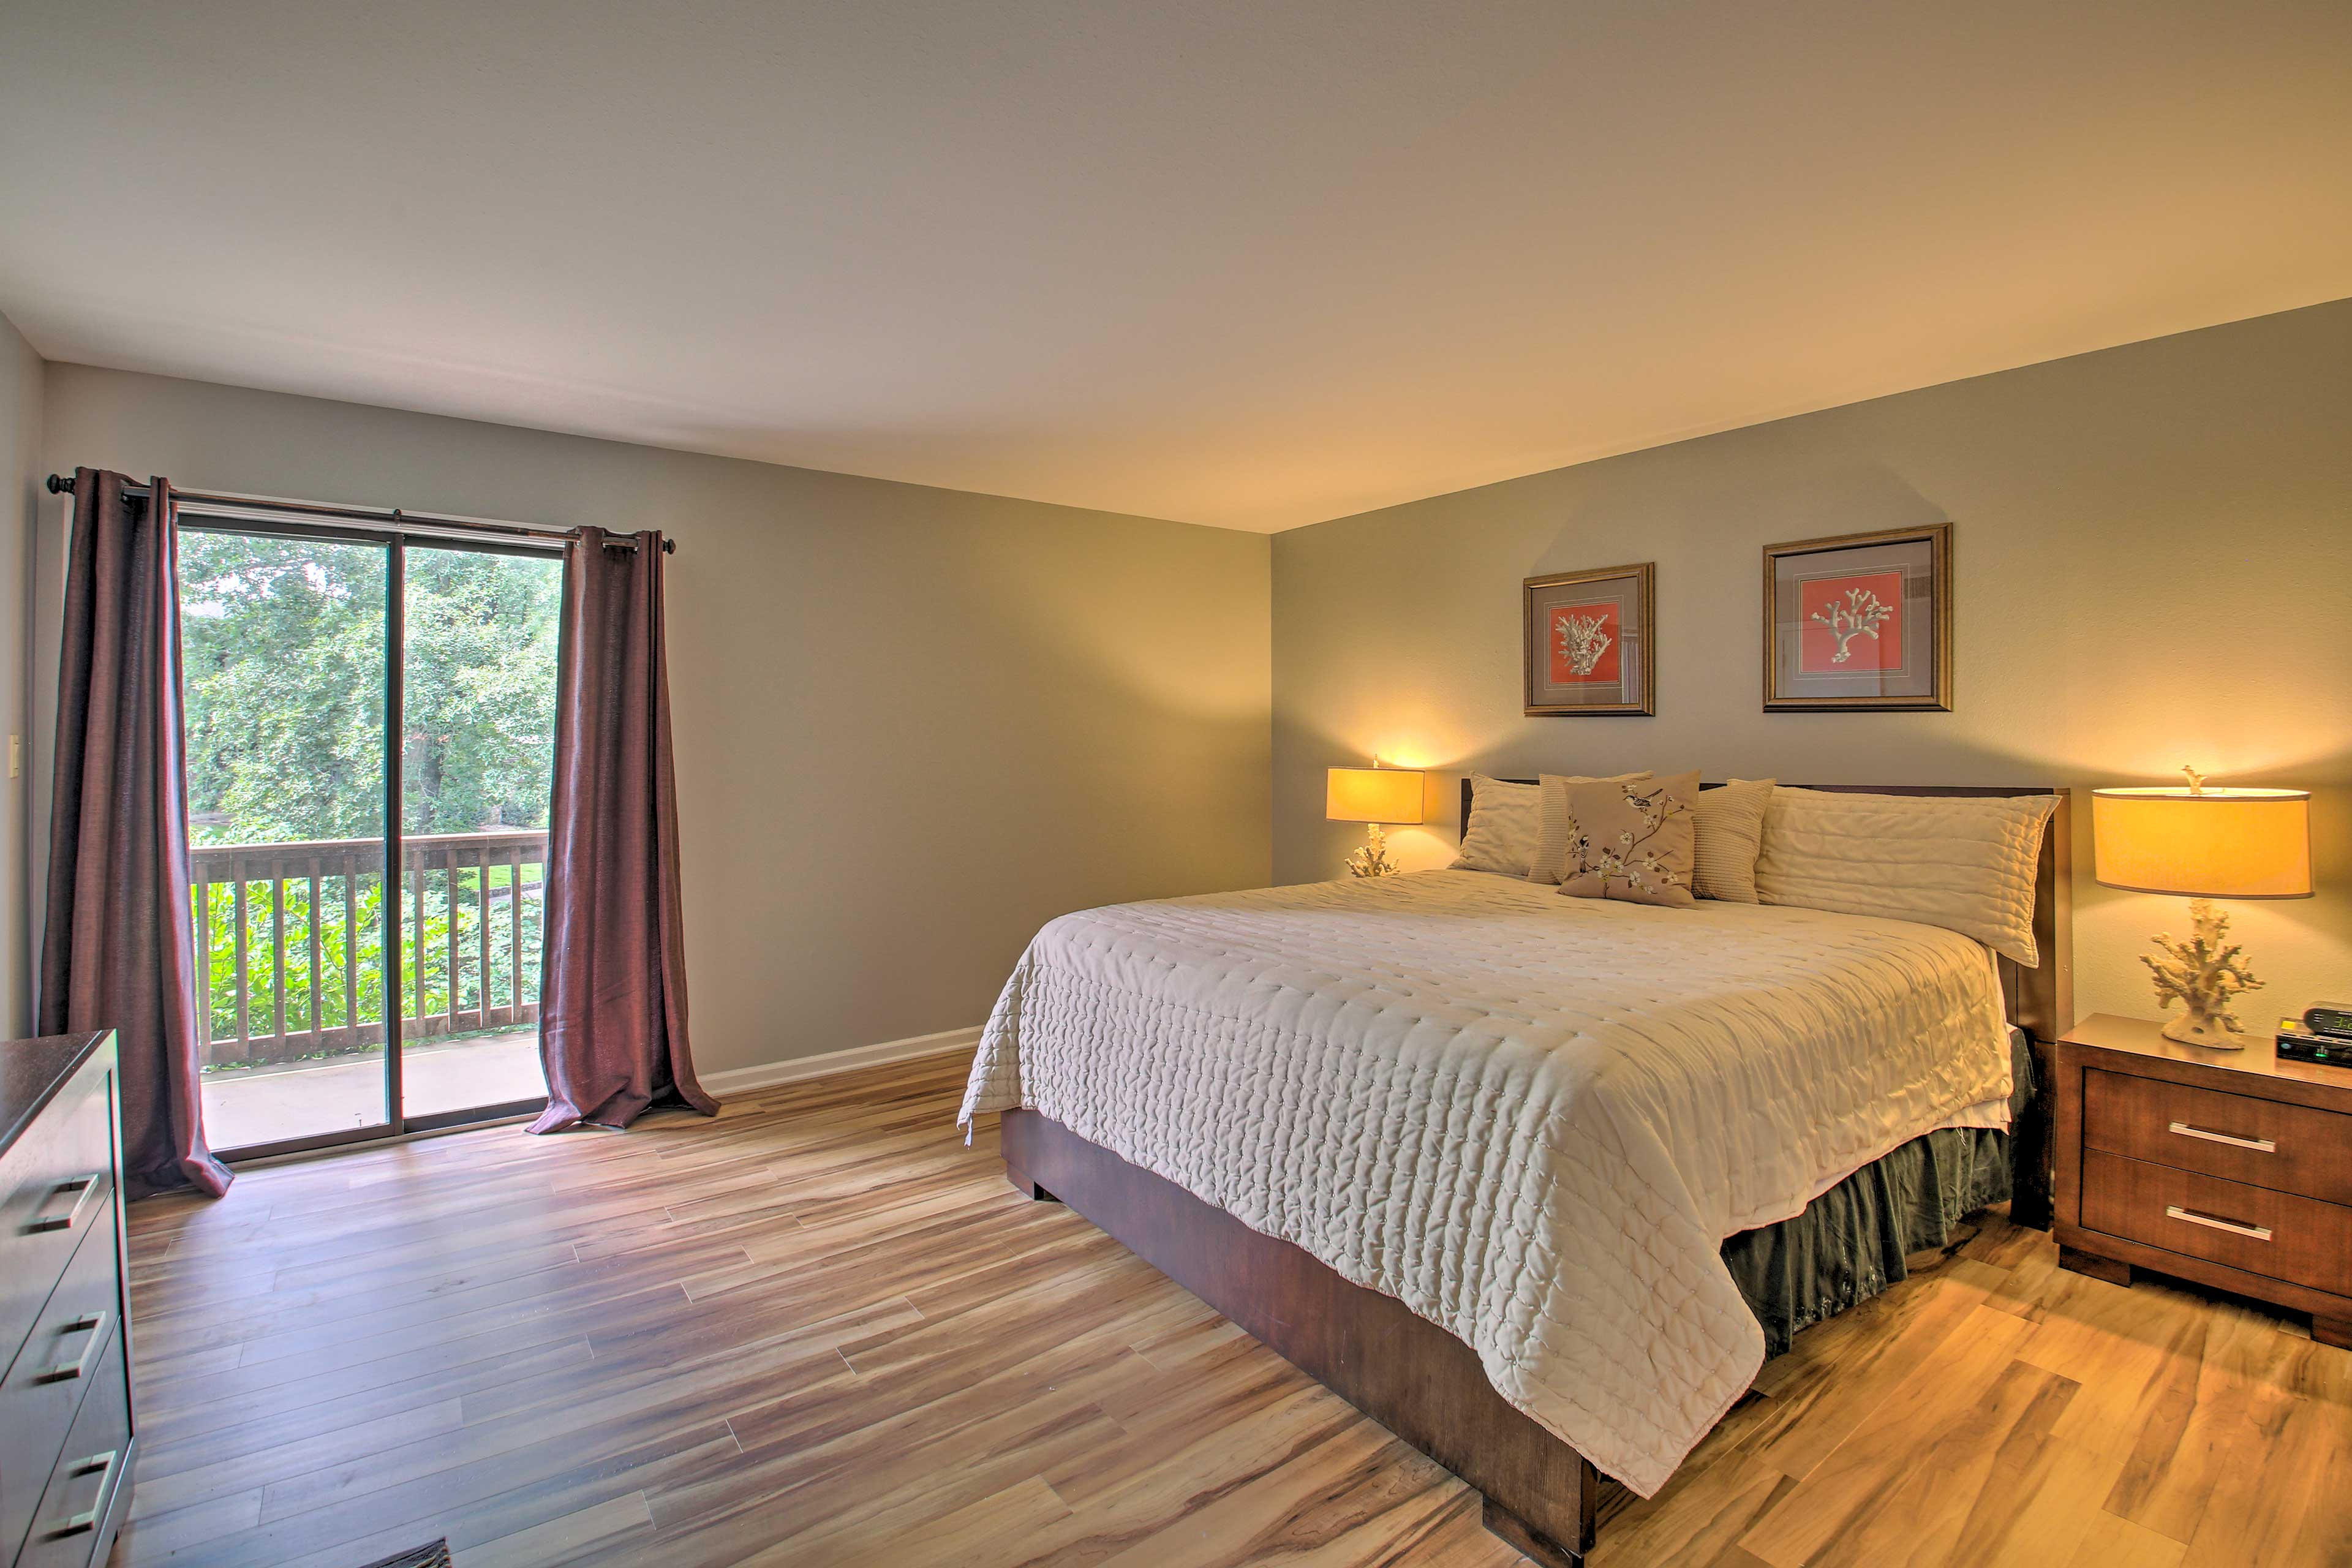 The condo offers 2 bedrooms.